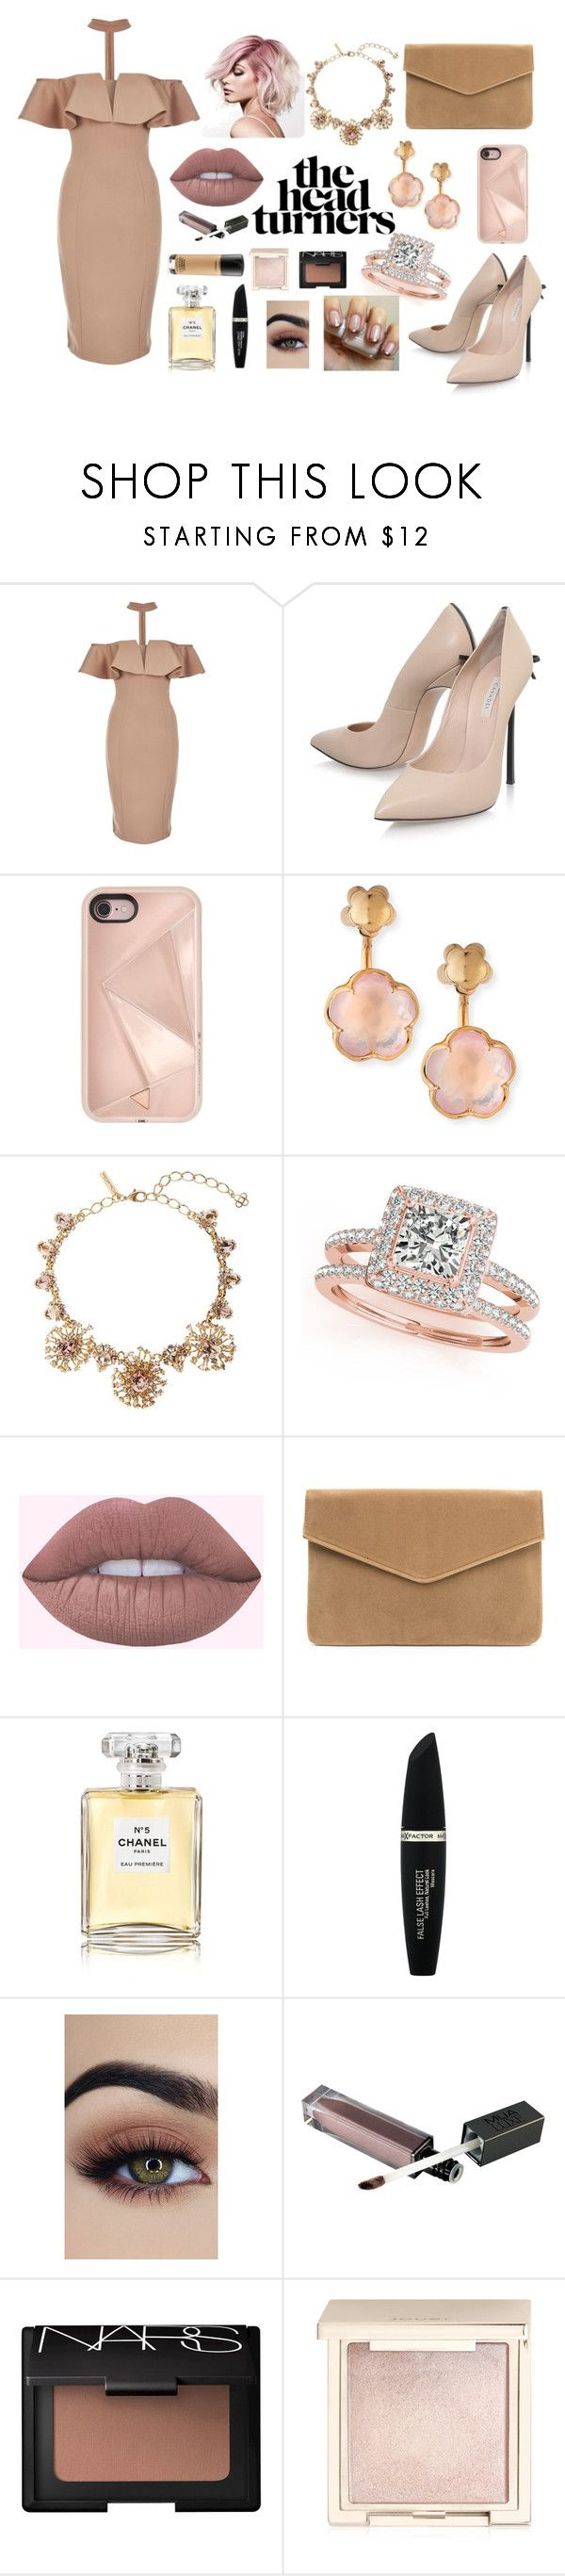 """Untitled #100"" by alexanutella on Polyvore featuring Rare London, Casadei, Rebecca Minkoff, Pasquale Bruni, Oscar de la Renta, Allurez, Chanel, Max Factor, NARS Cosmetics and Jouer"